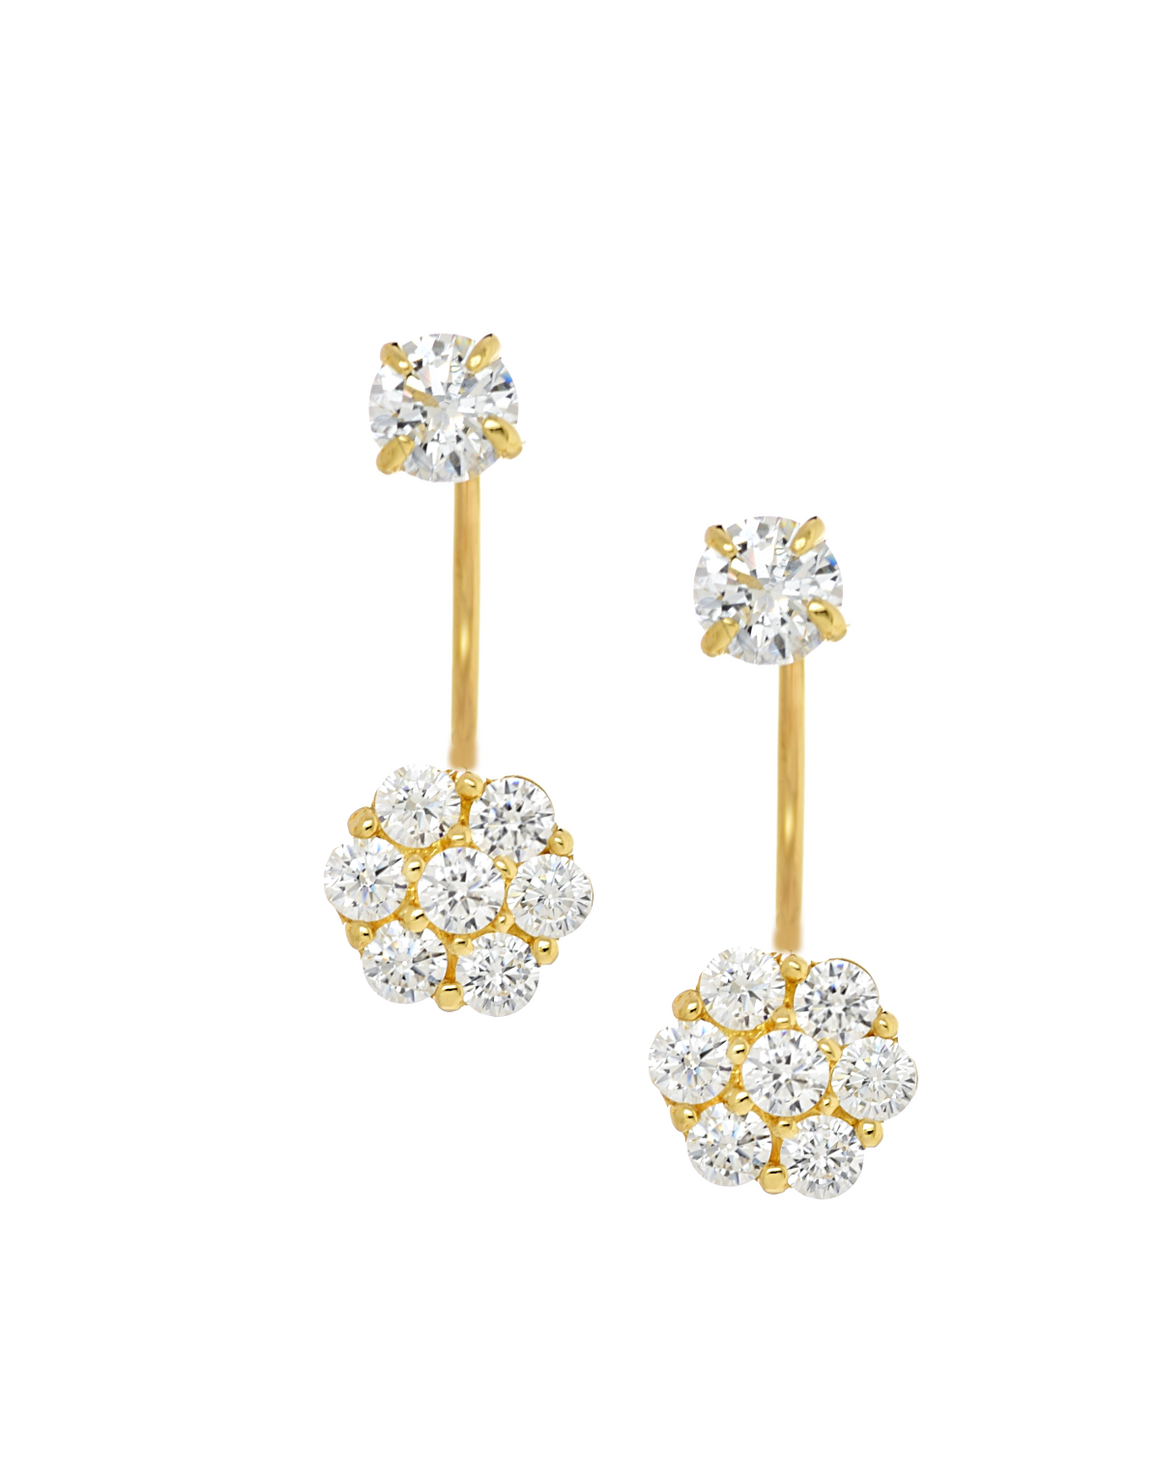 14K Yellow Gold Flower Cluster CZ Telephone Earrings - Anny Gabriella NY